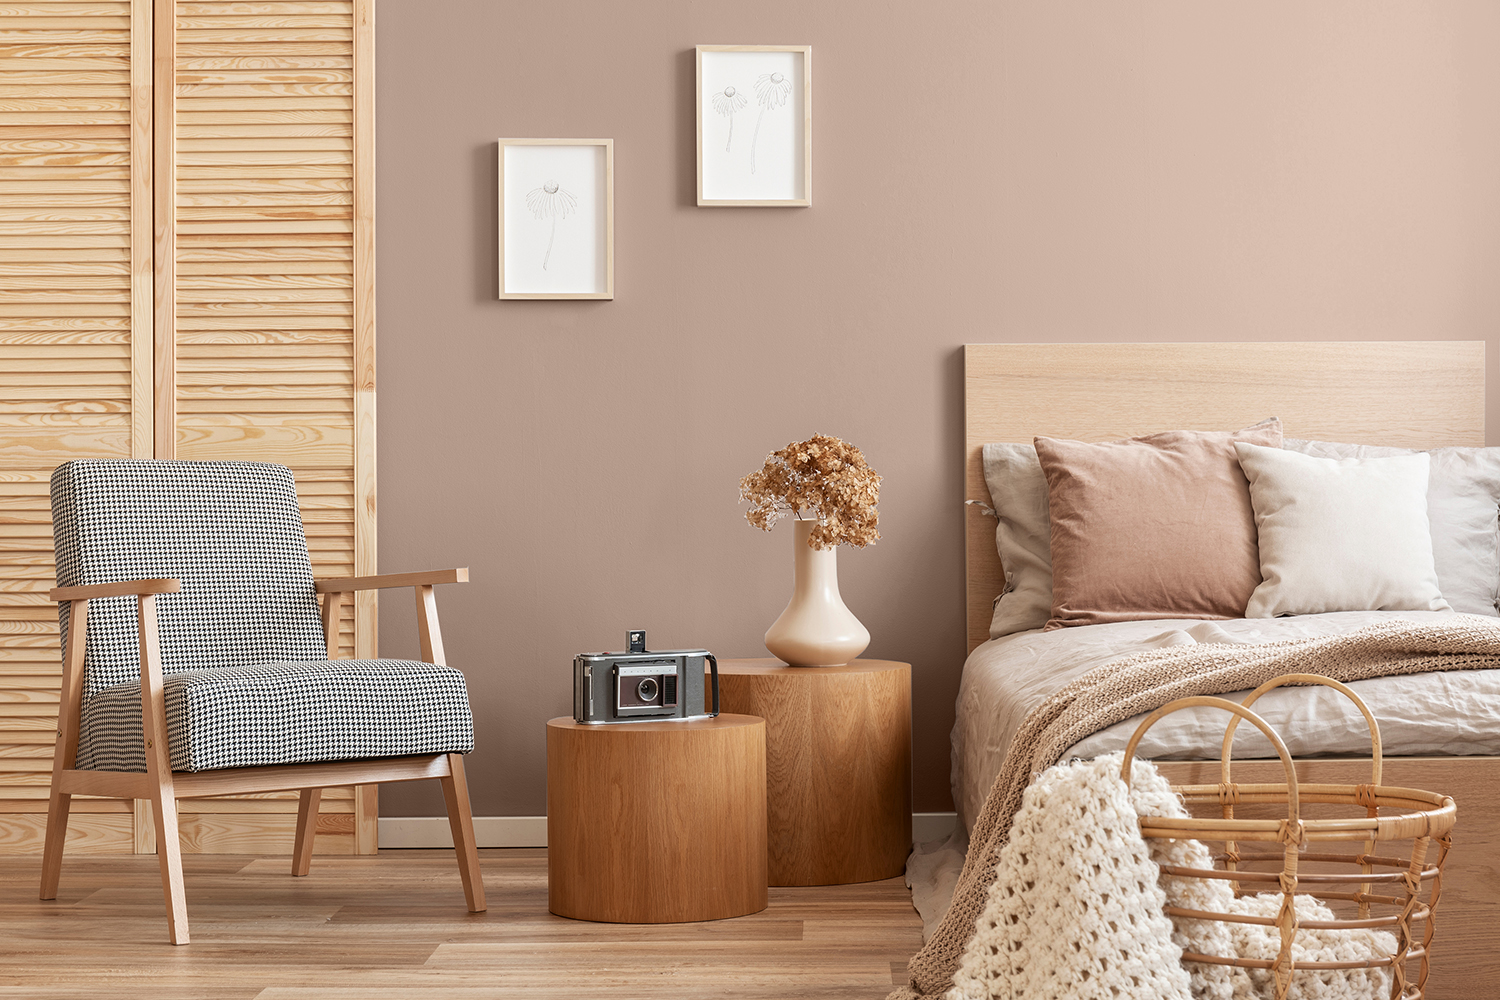 Bedroom design in Sherwin Williams' Heart